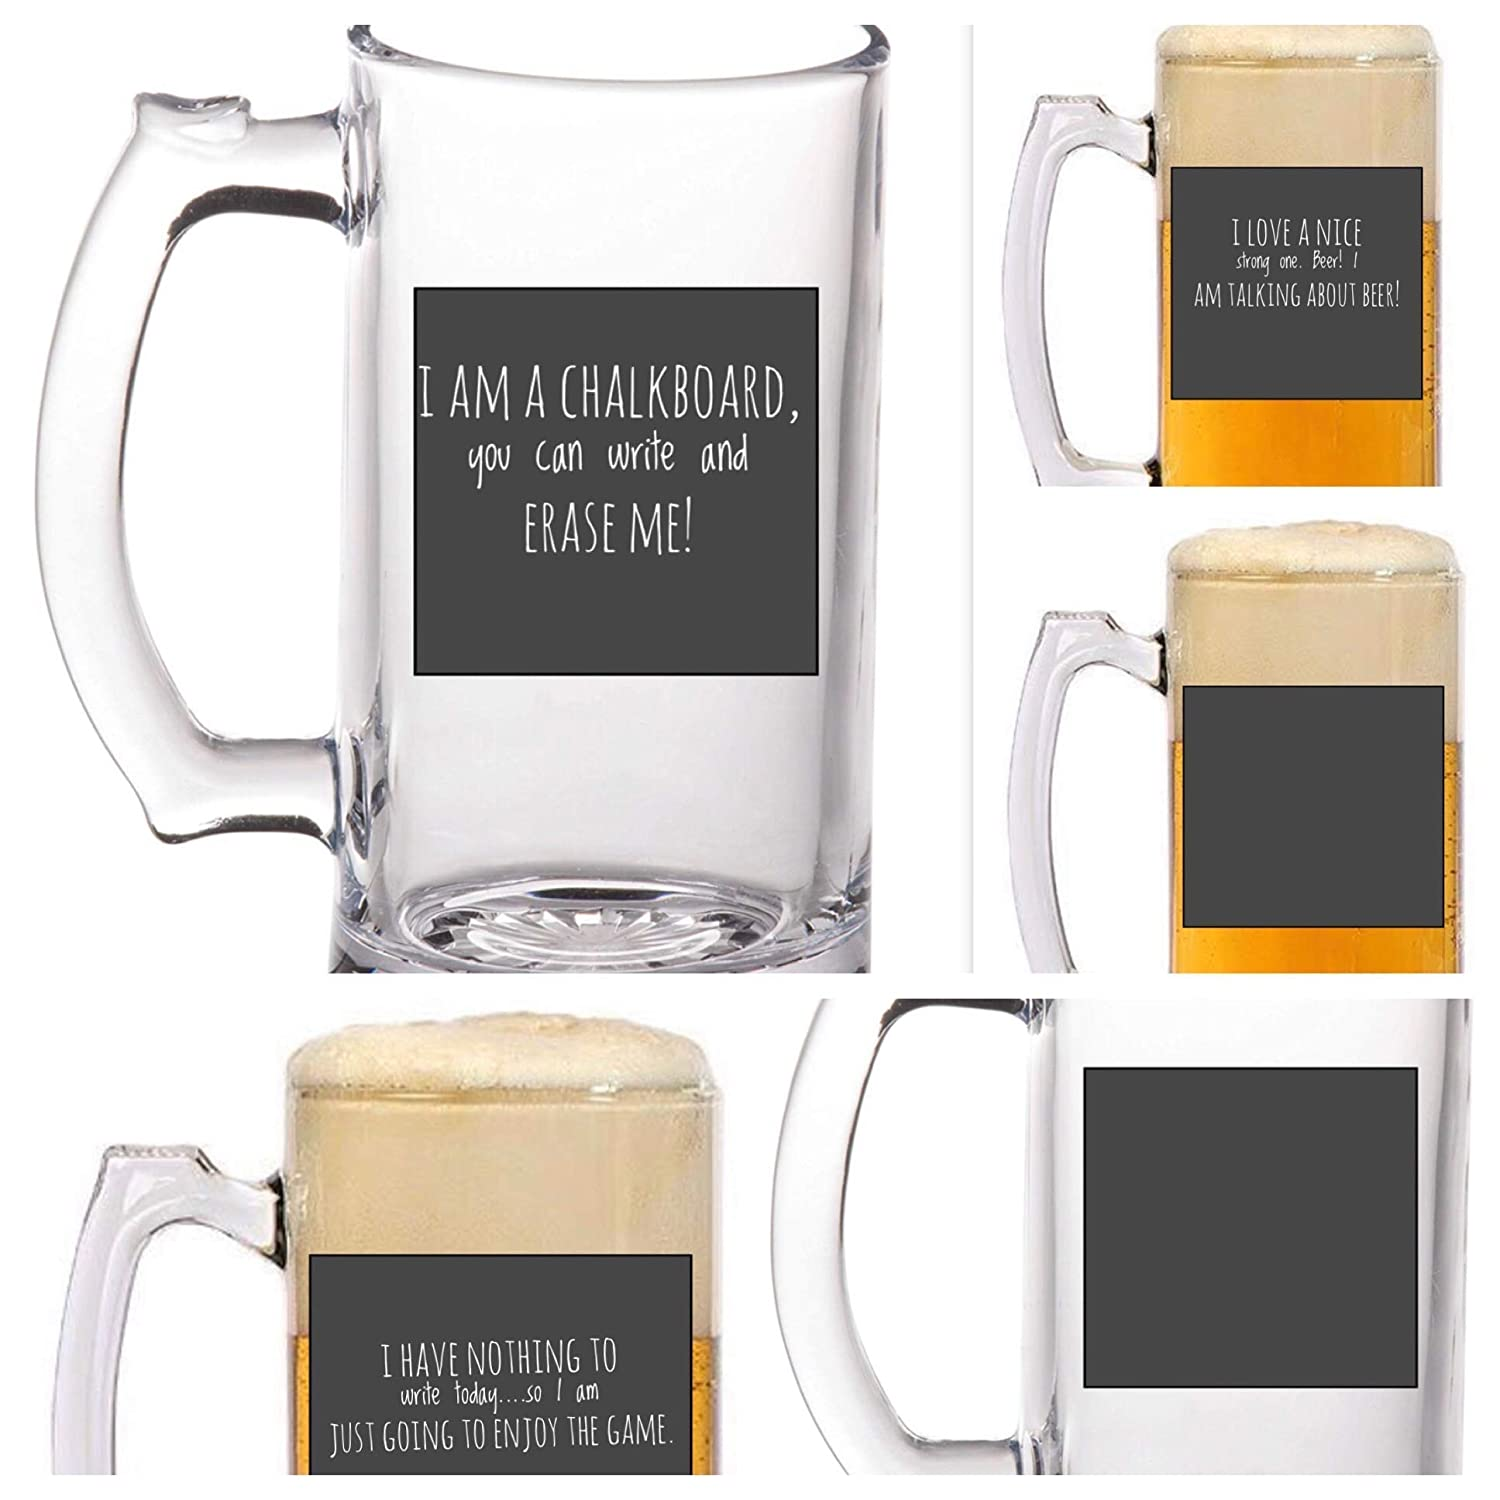 Chalkboard drinking mugs by M/&M Events and Things Chalkboard mugs Chalkboard Beer mugs Chalkboard drinking cups